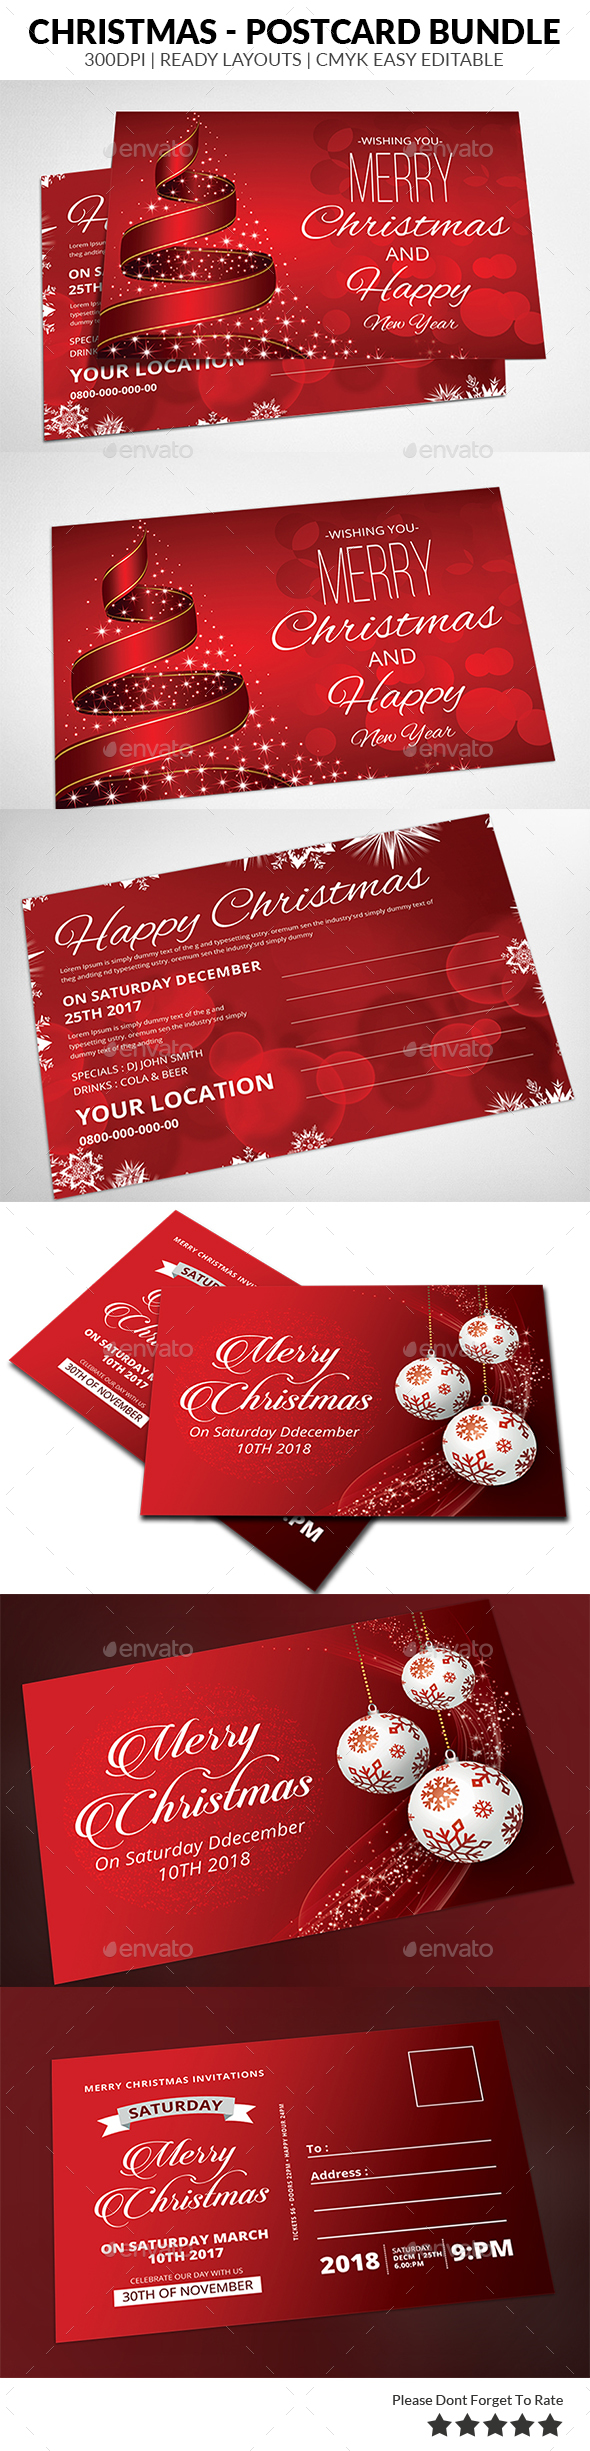 Christmas Postcard Bundle Templates - Events Flyers